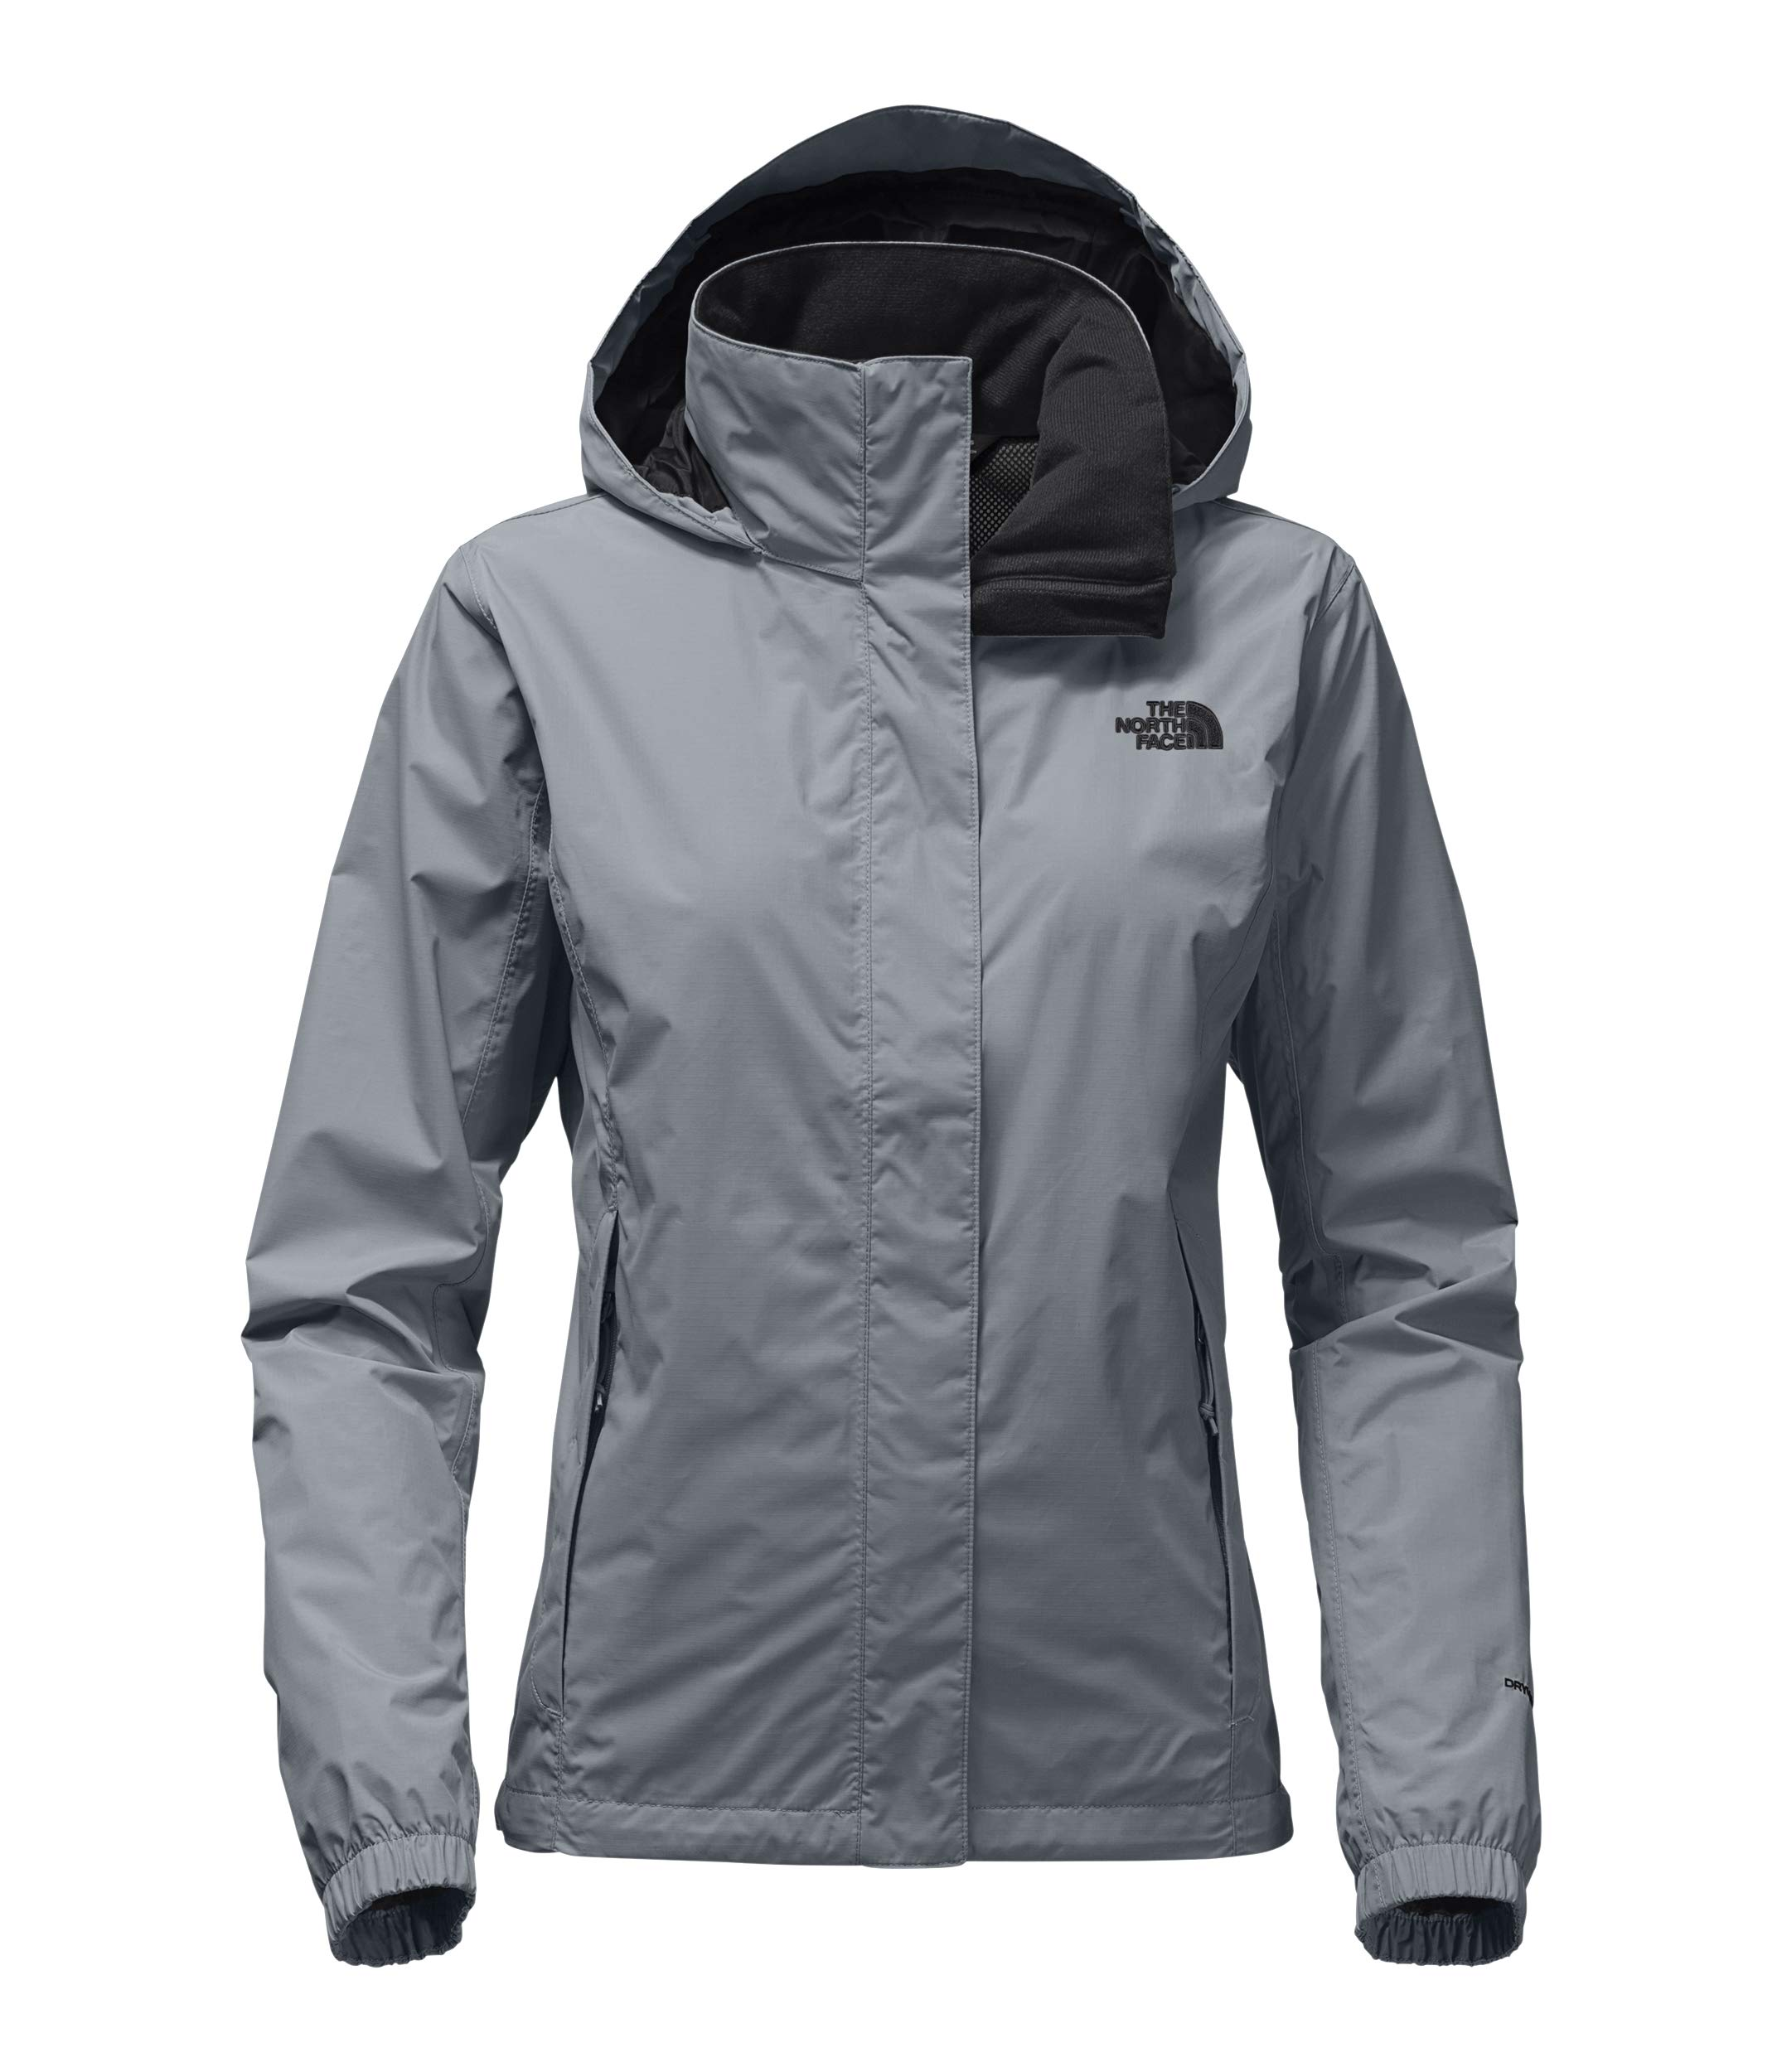 The North Face Women Resolve 2 Jacket - Mid Grey & TNF Black - XXL